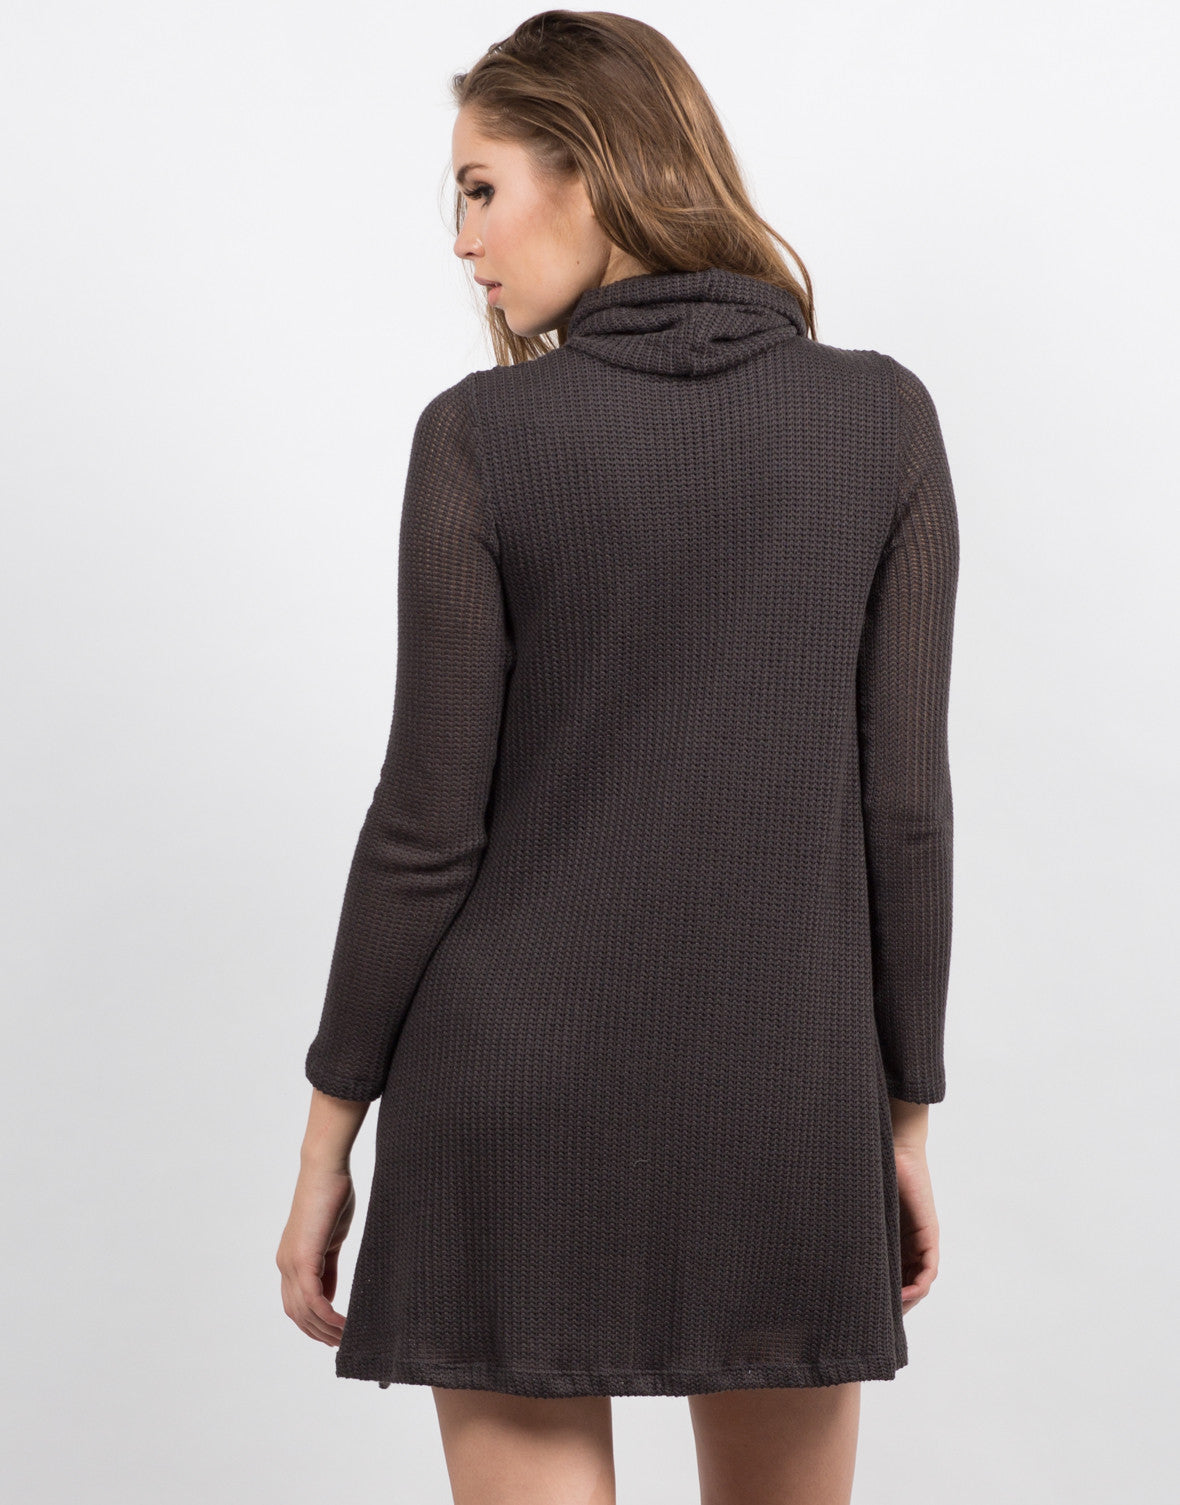 Back View of Knitted Sweater Dress